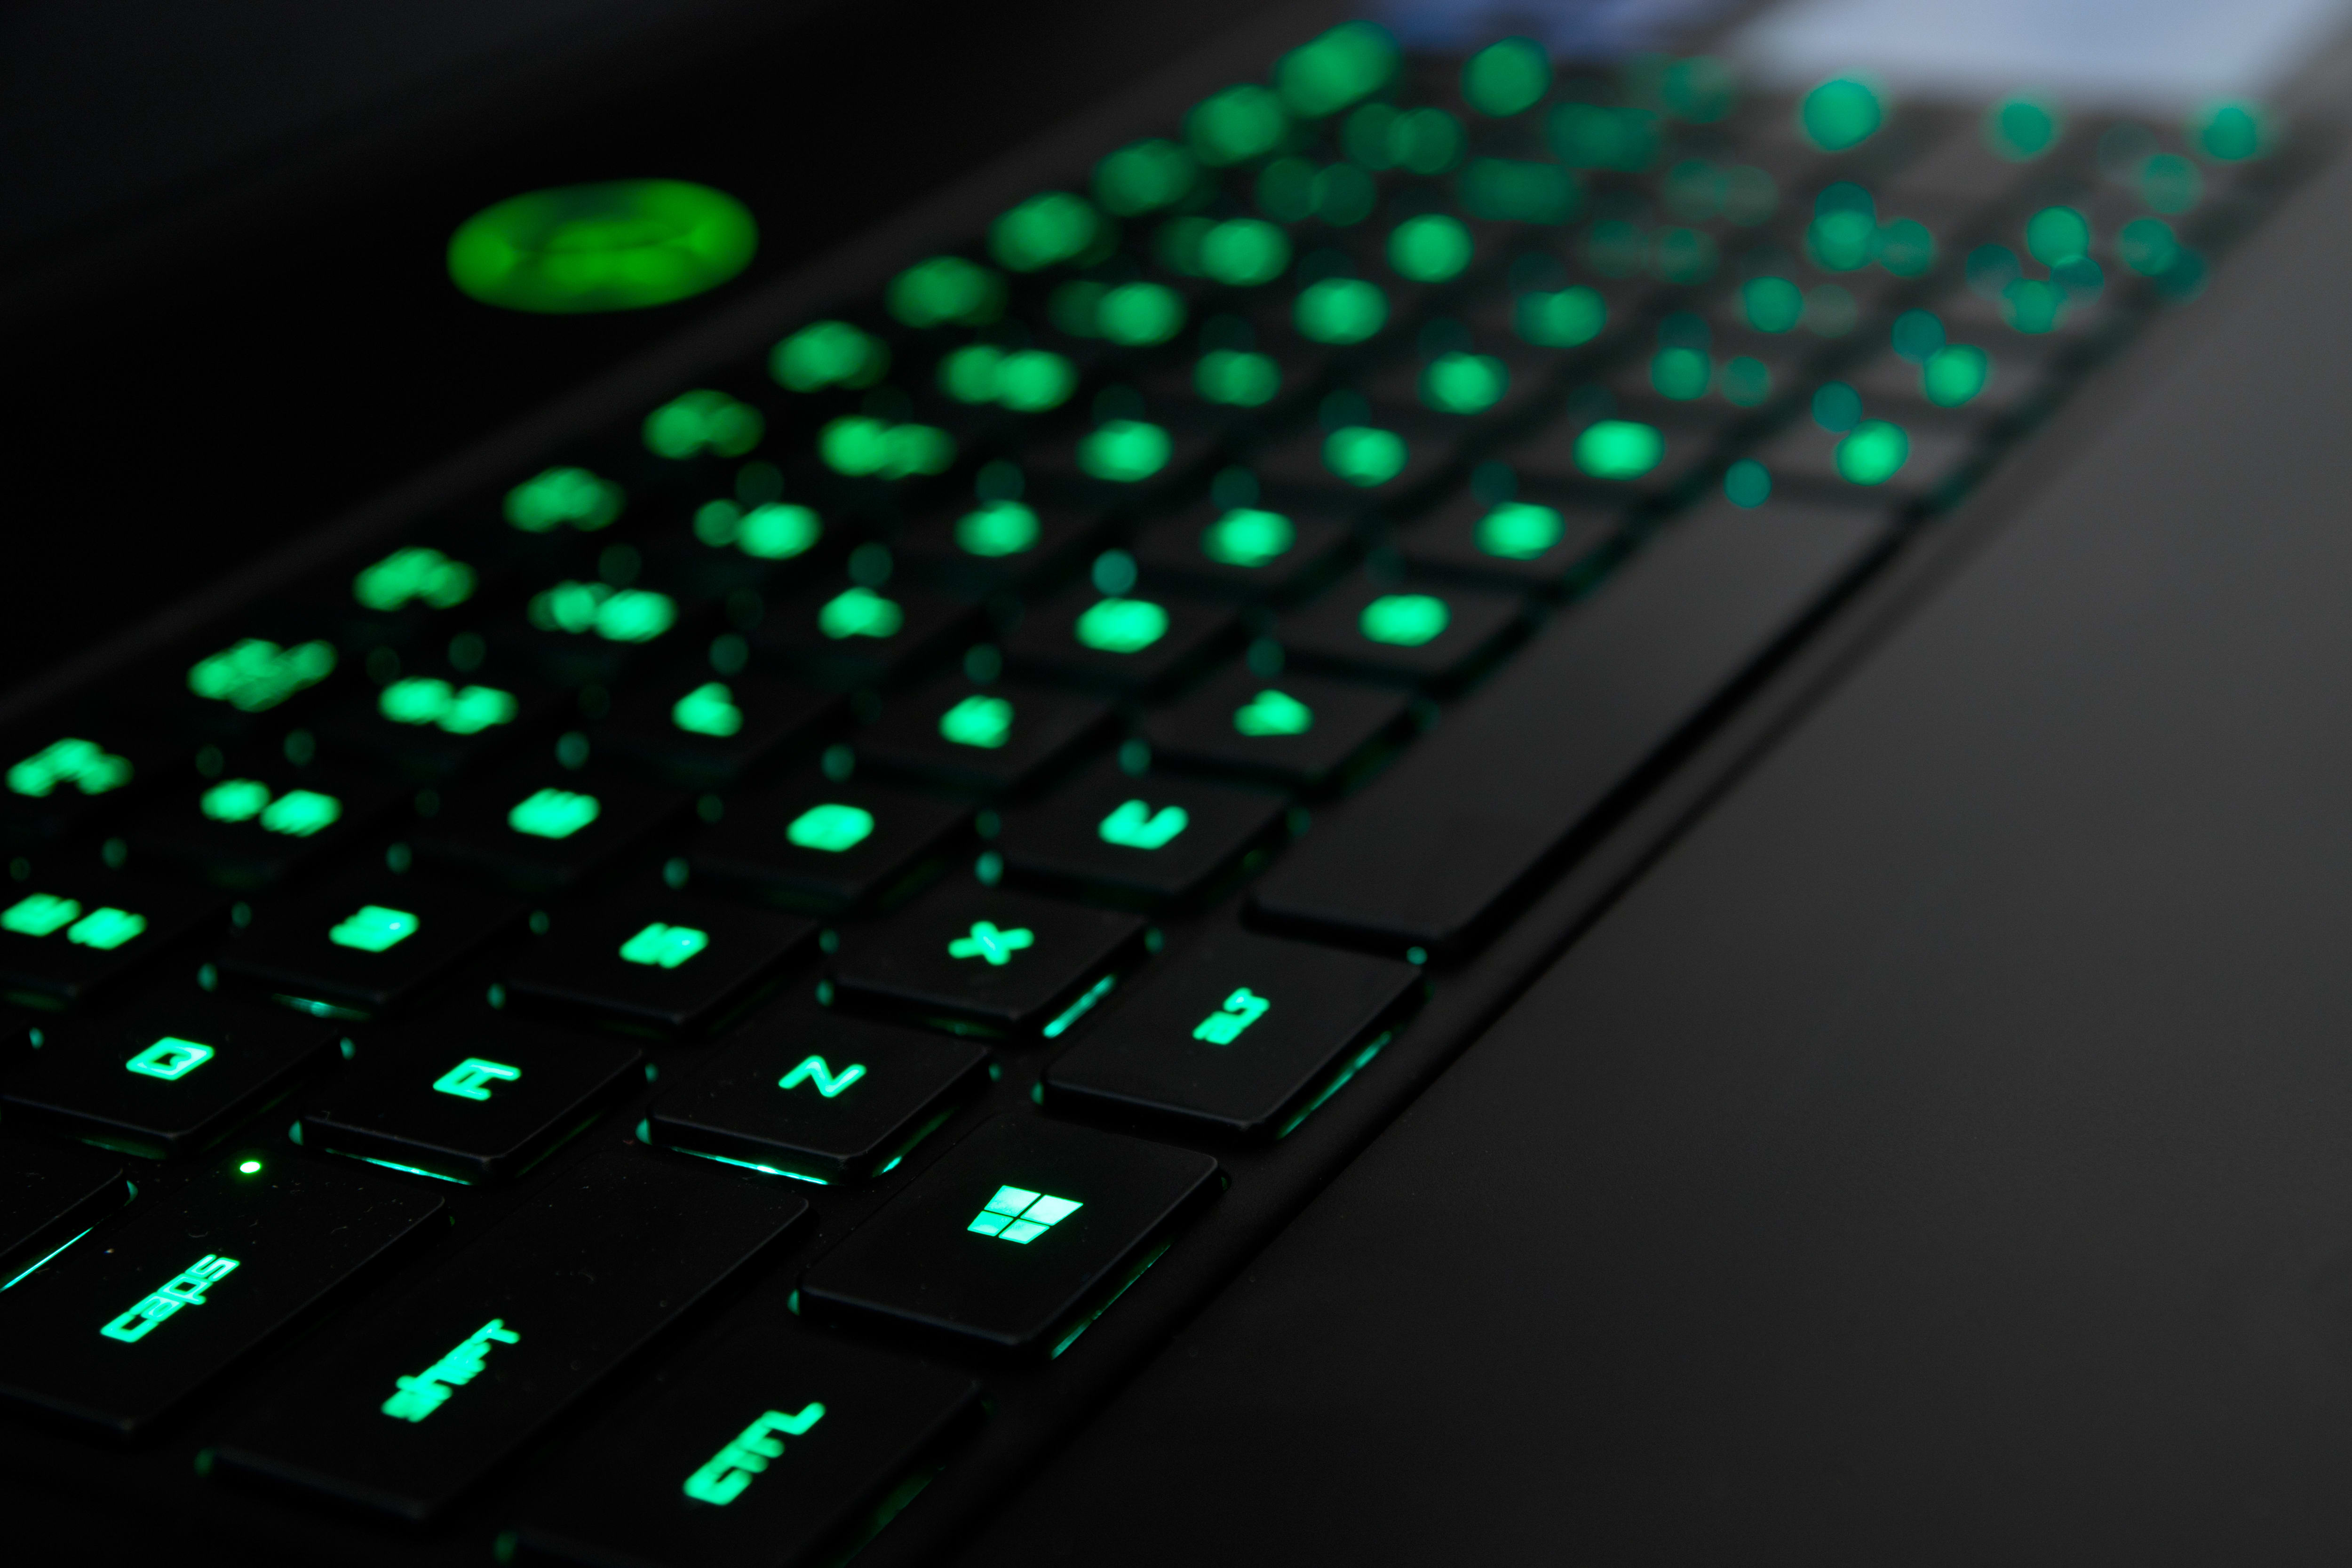 A photo of the Razer Blade Pro's backlighting.